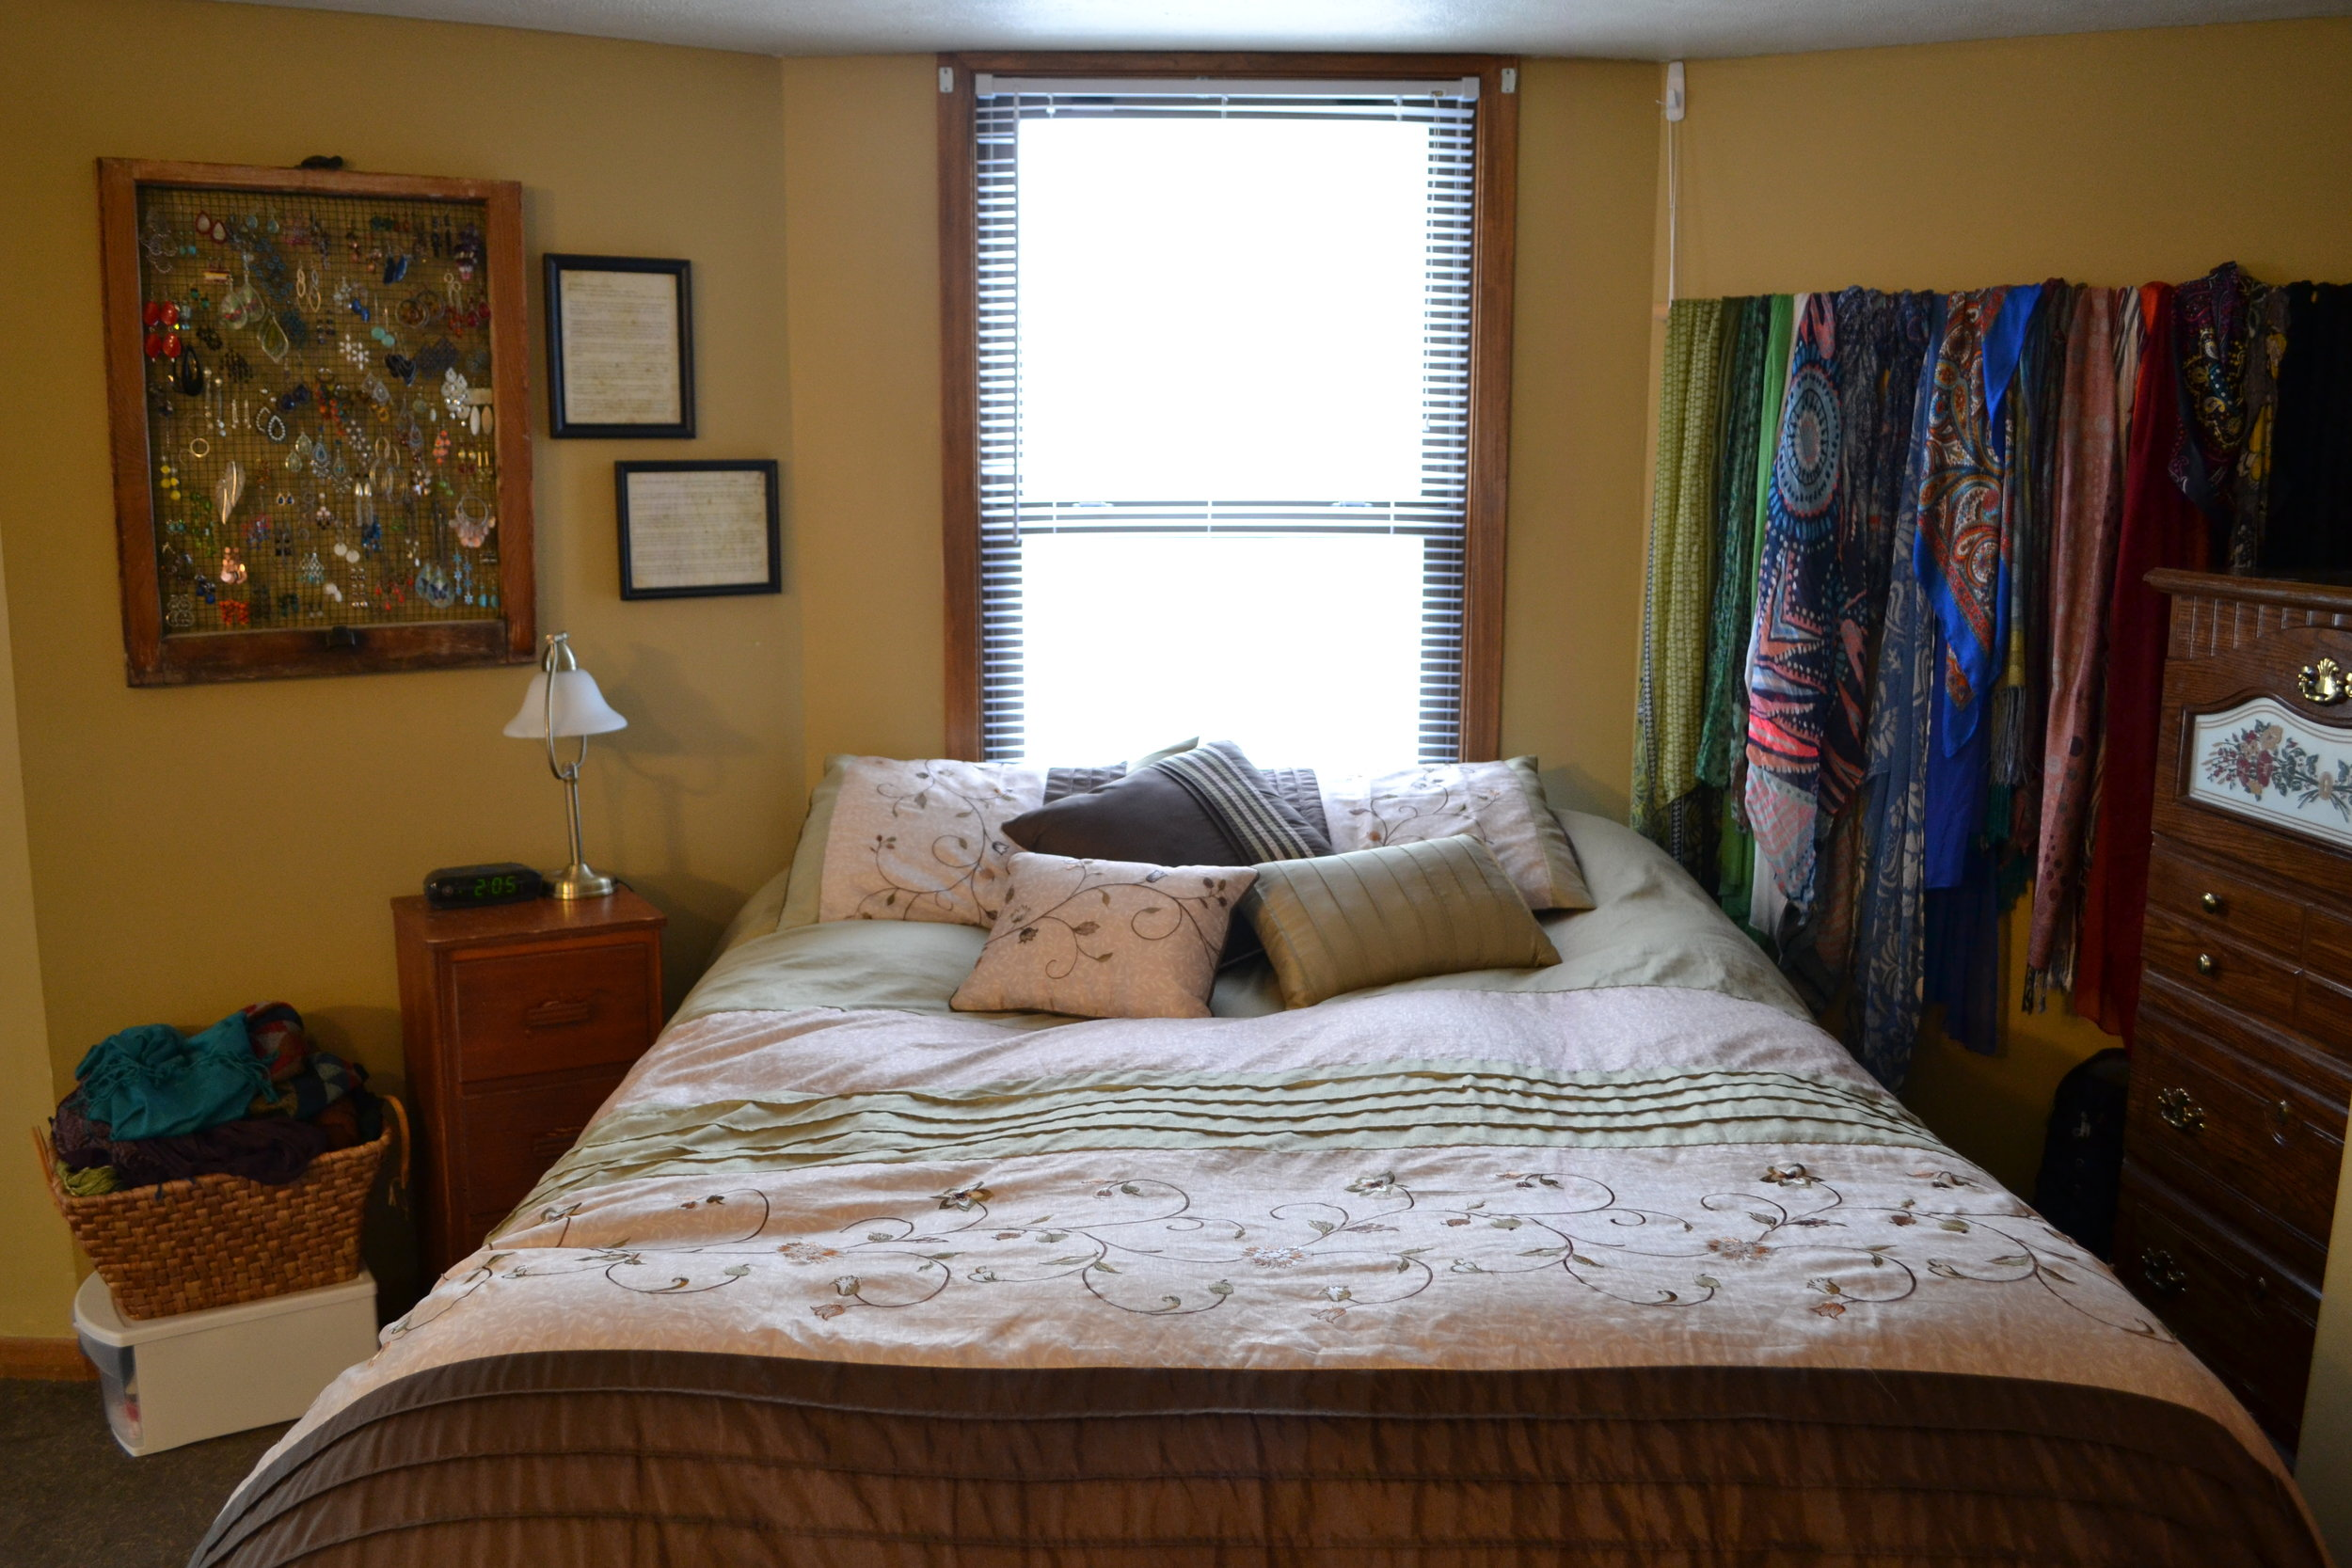 A comfortable, clean bedroom option, using accessories as wall decorations.